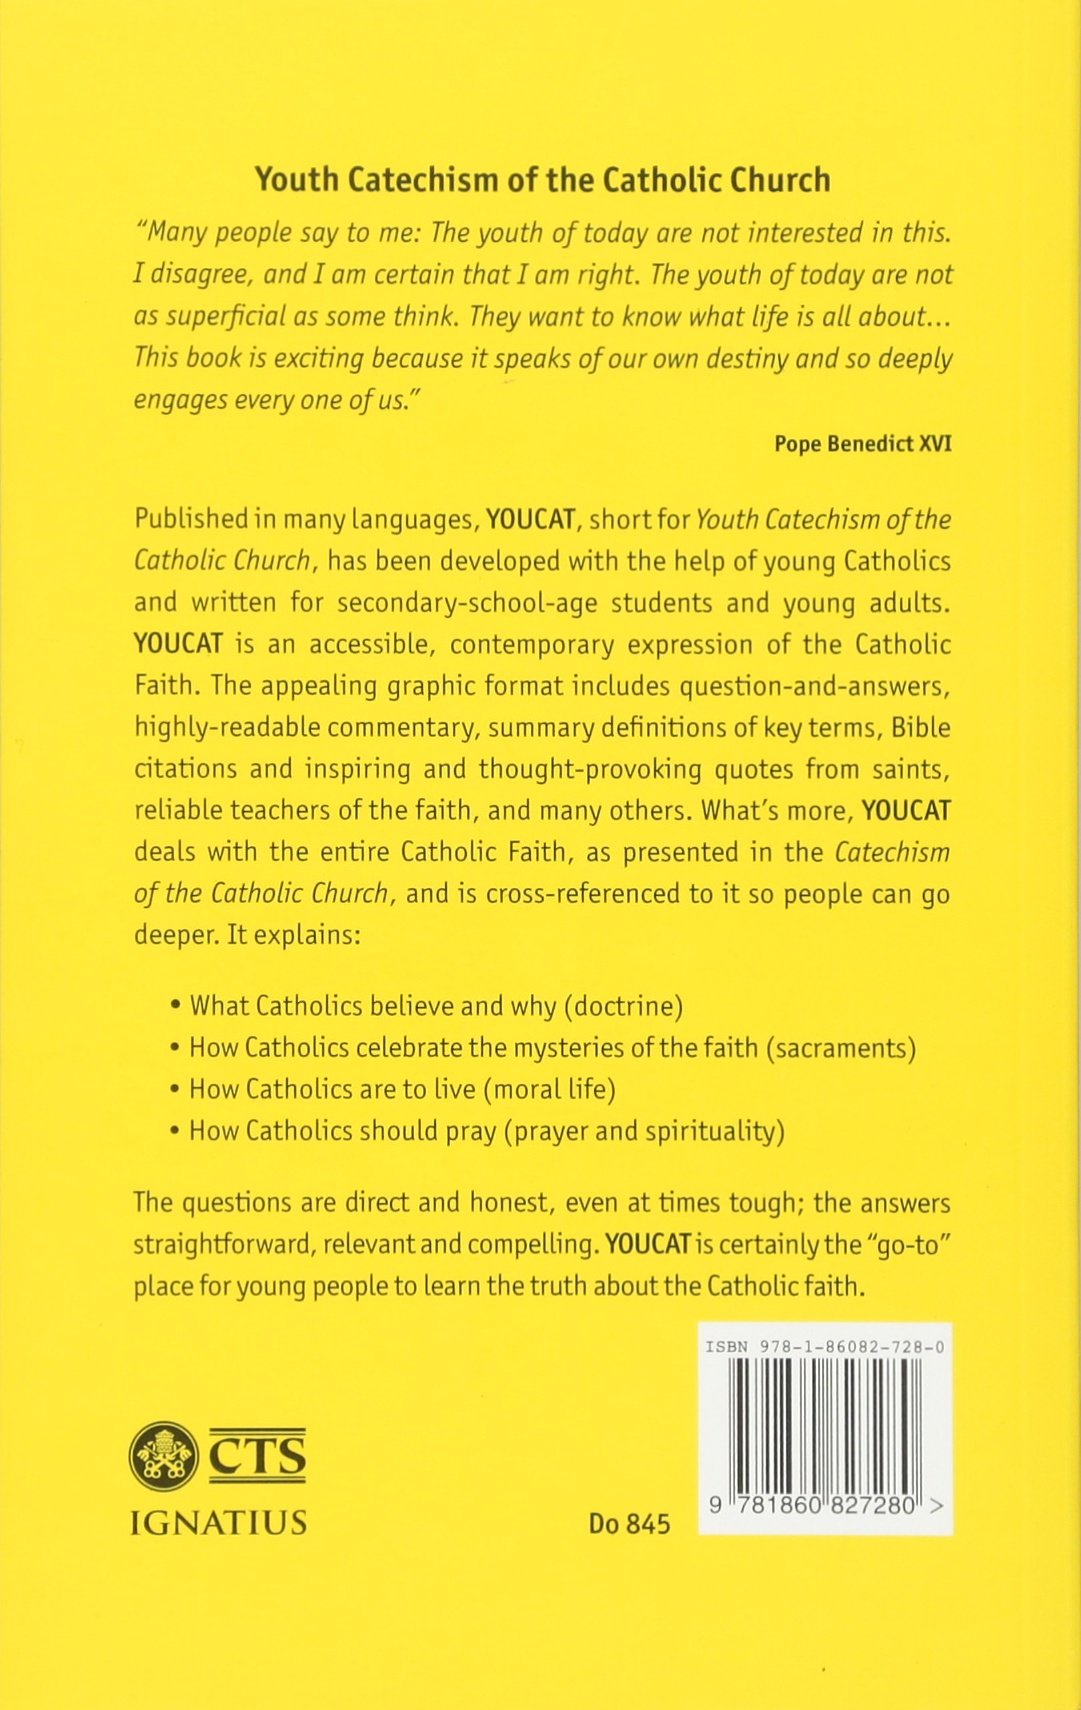 Youcat English Youth Catechism of the Catholic Church: YOUCAT Foundation  (author): 9781860827280: Amazon.com: Books